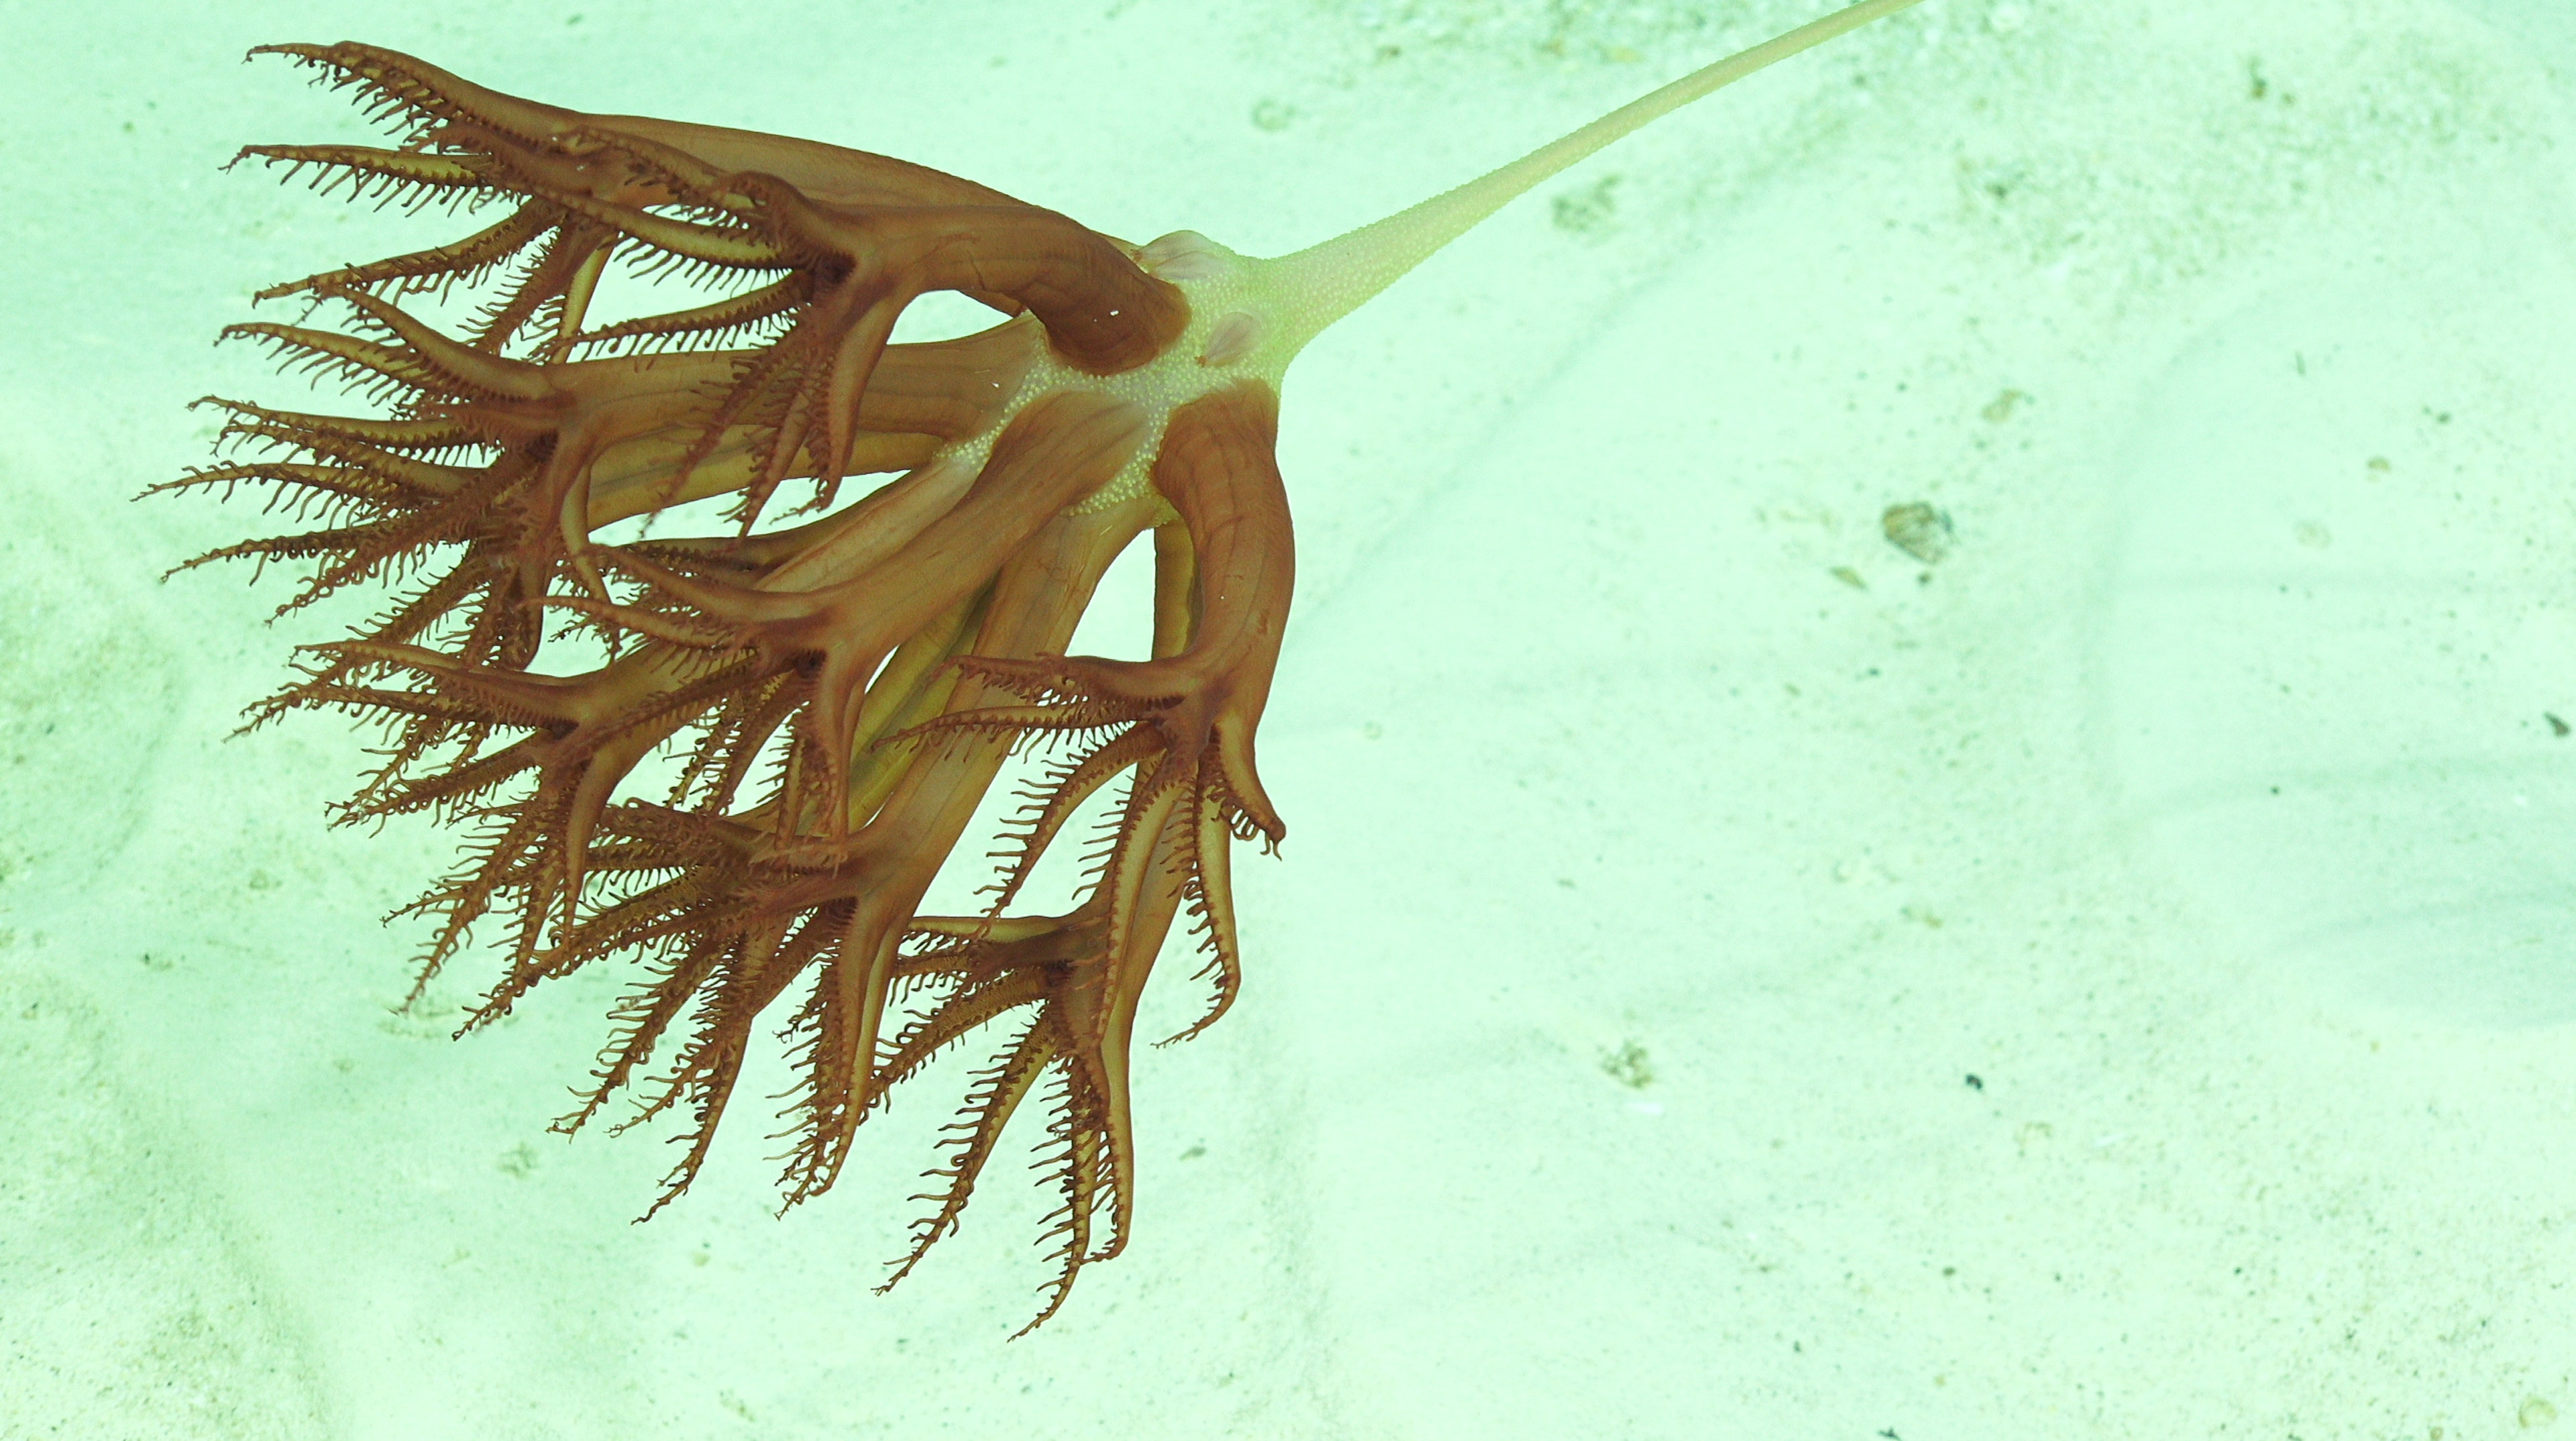 A sea pen, or possibly your new screensaver.